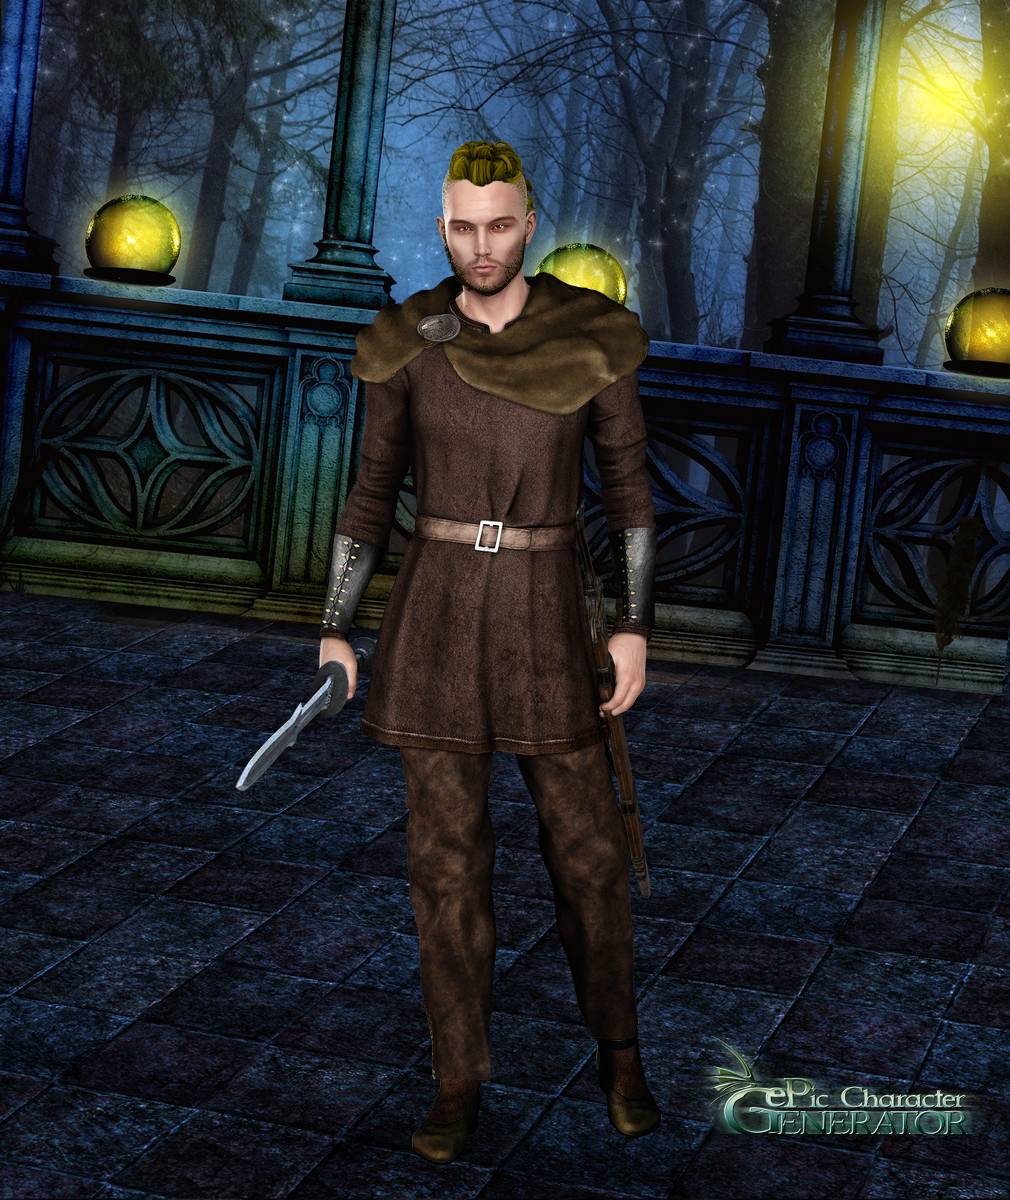 ePic Character Generator Season 2 Male Adventurer Screenshot 02